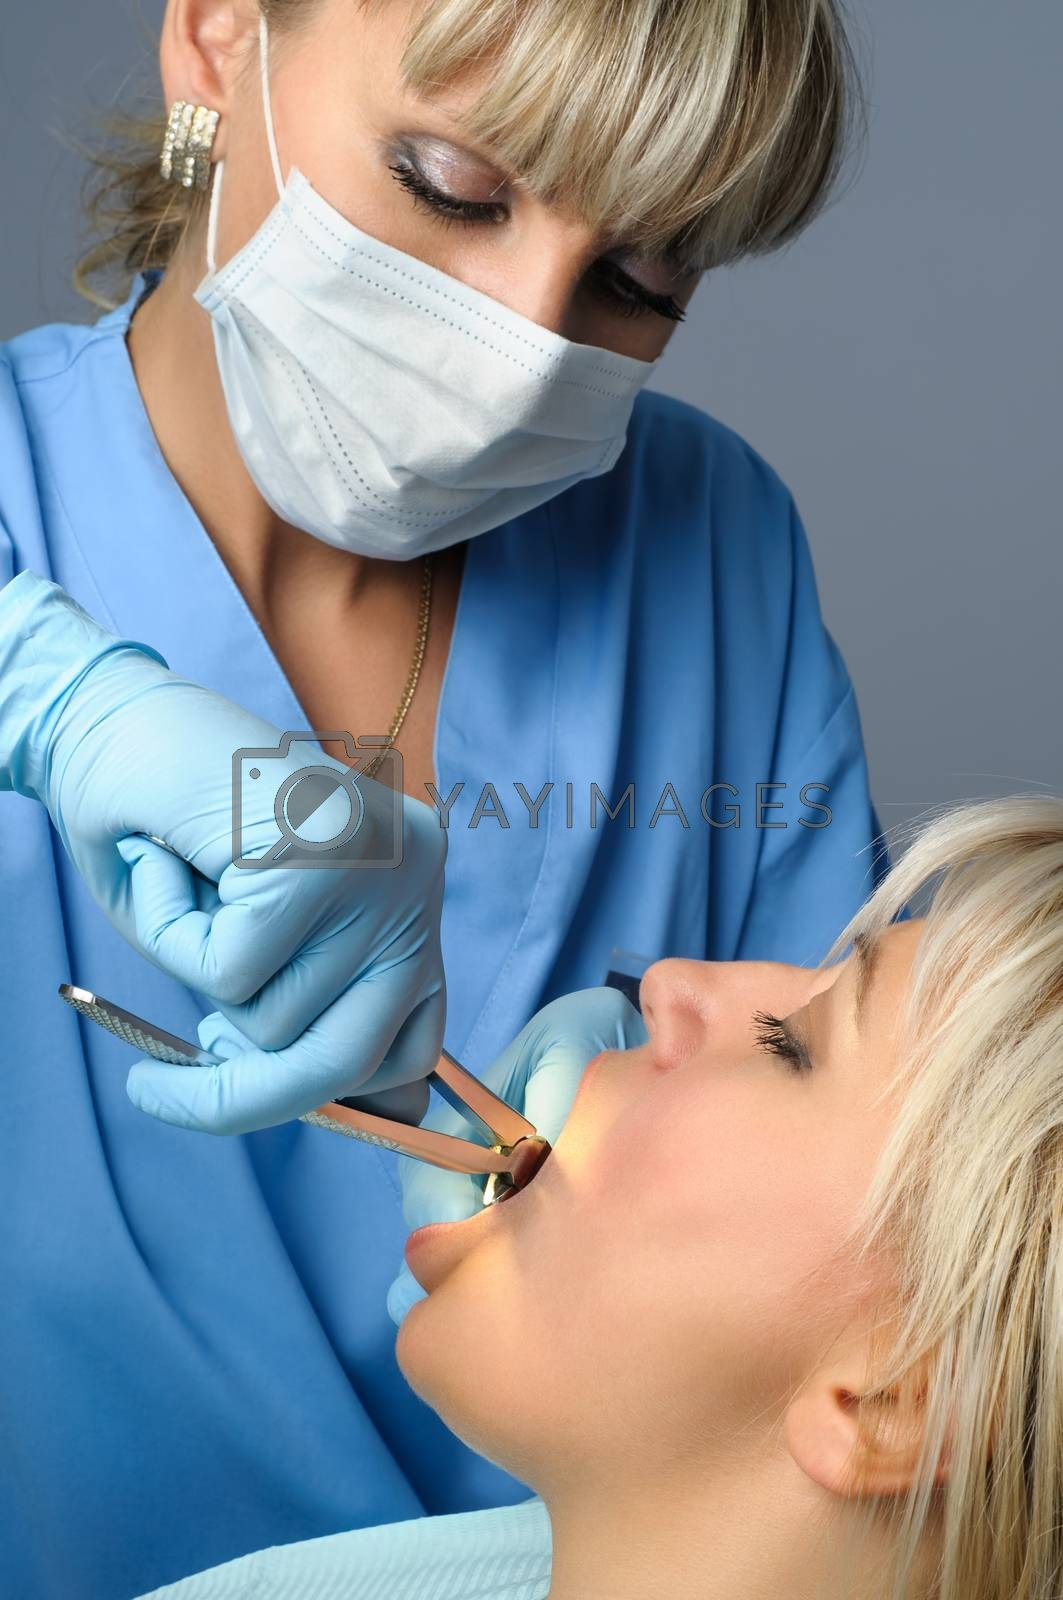 Dentist at work, tooth extraction using forceps